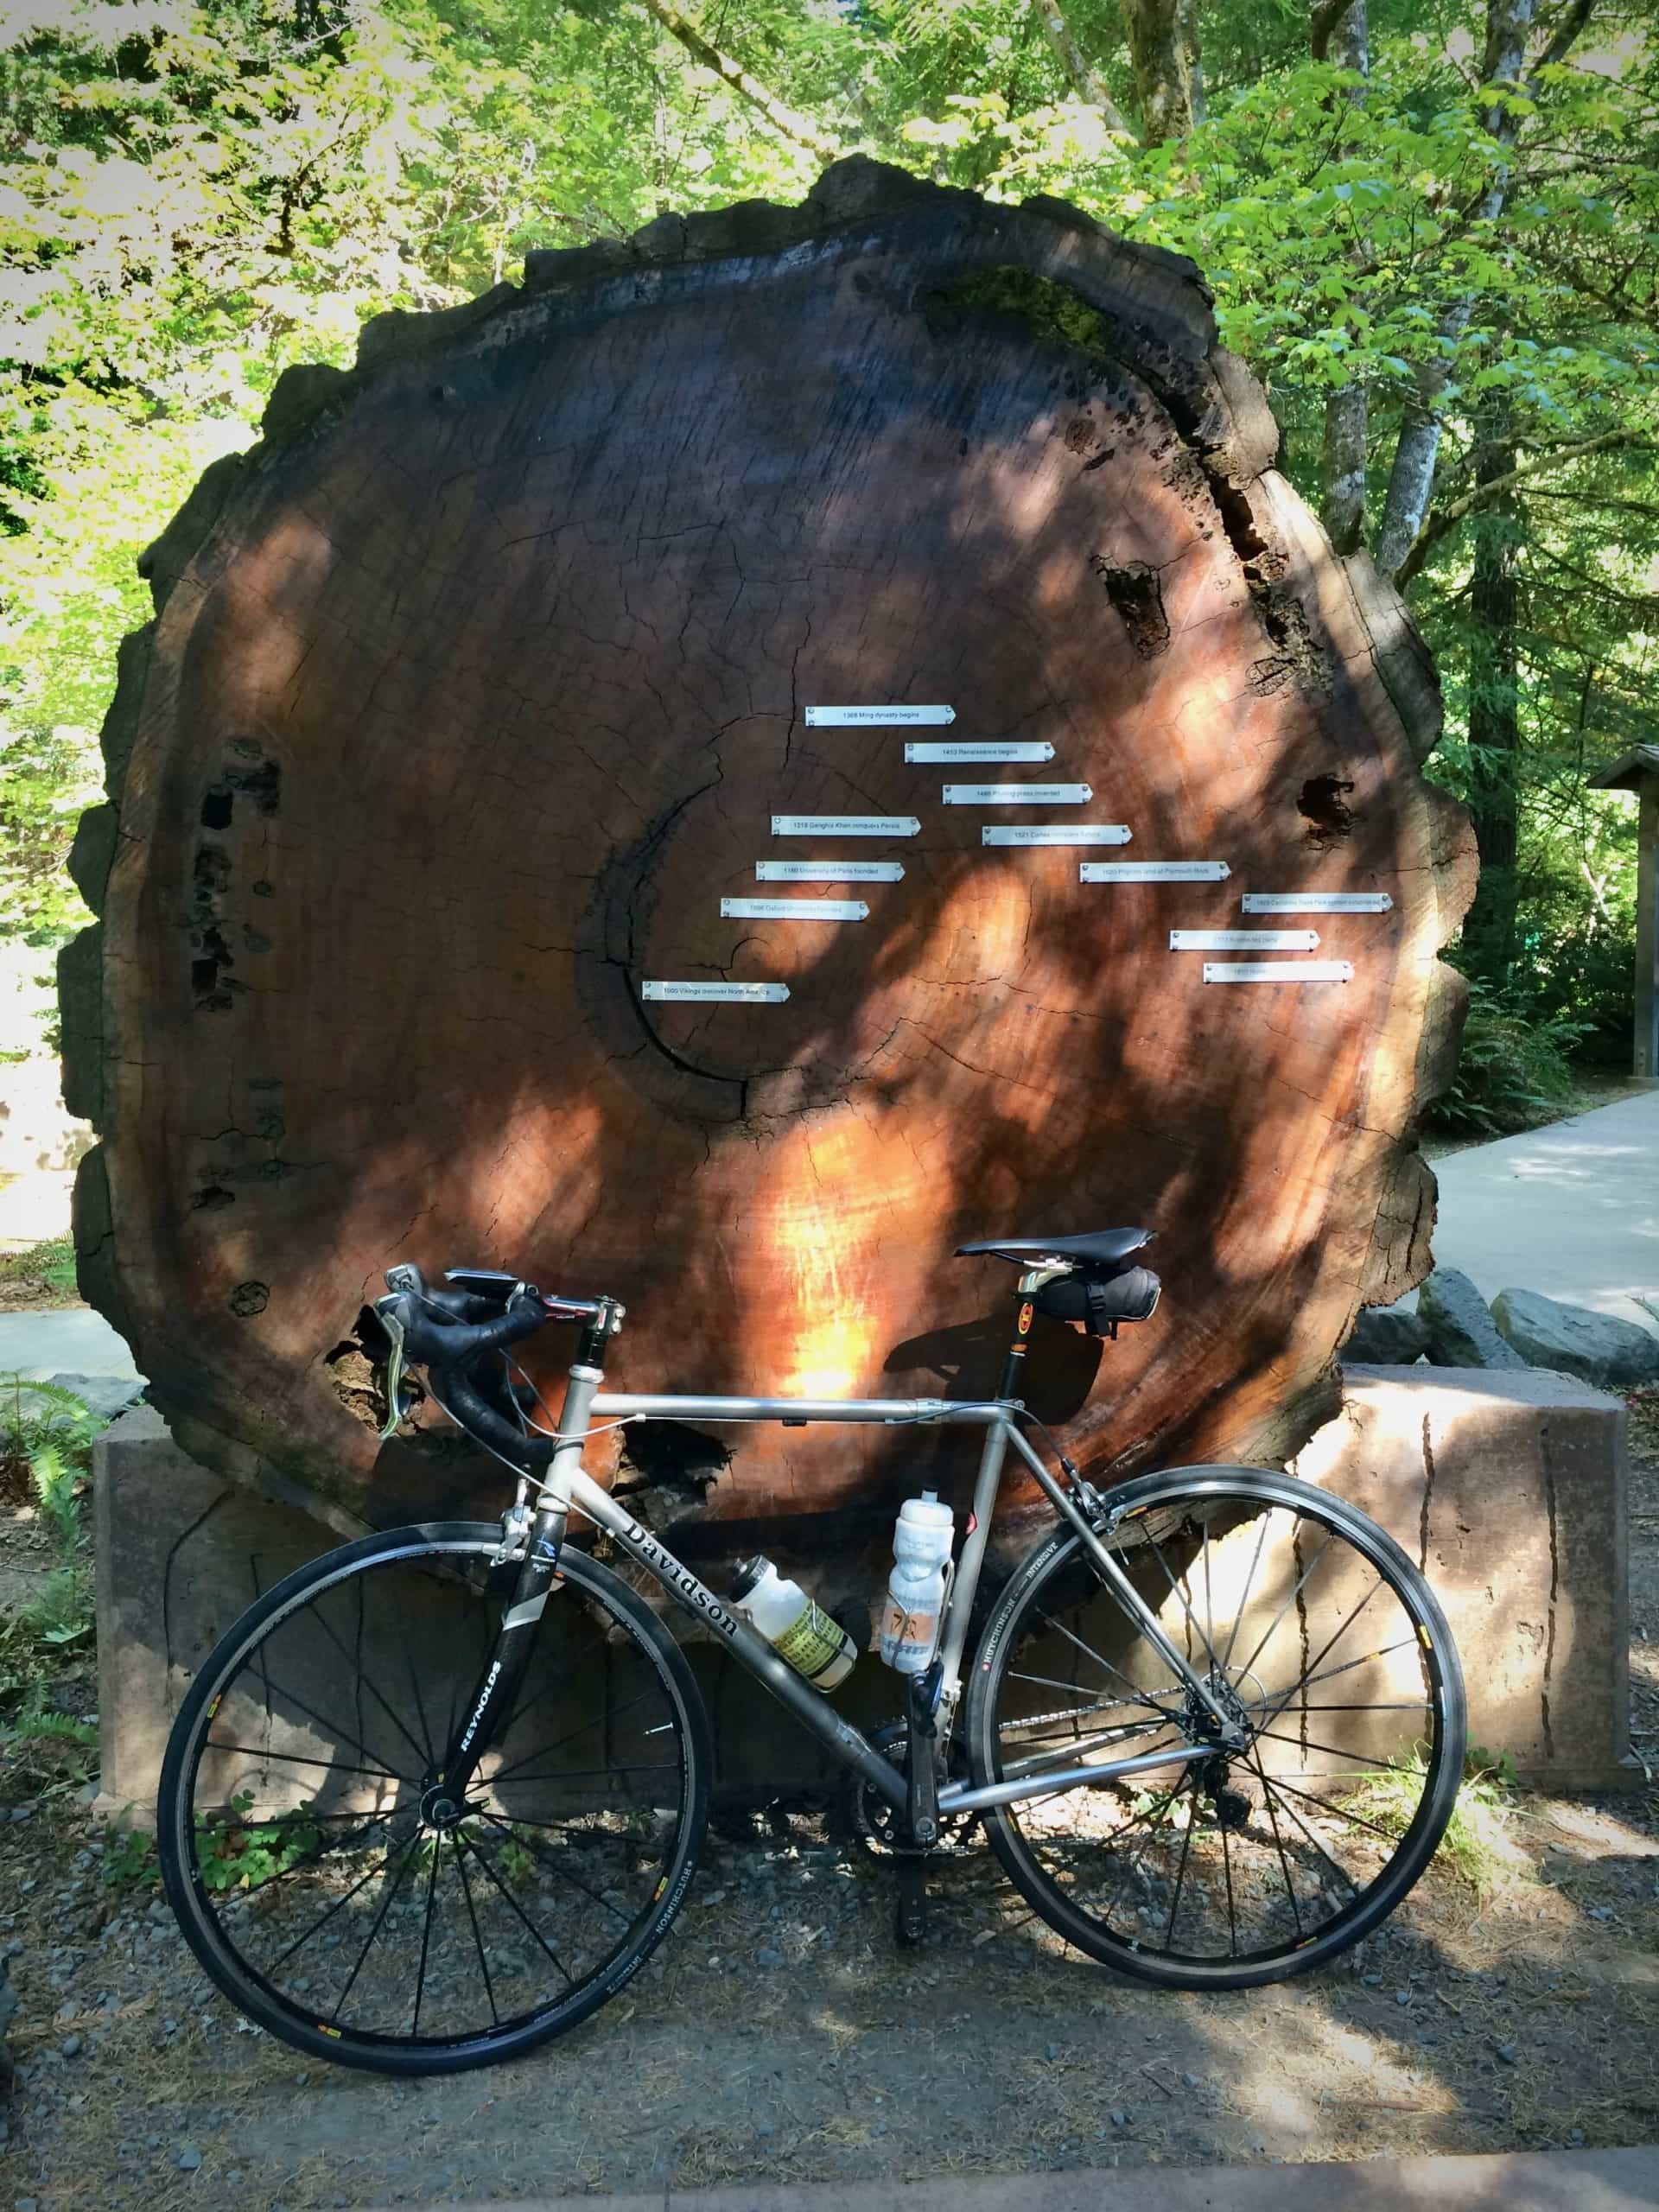 Bike next to large redwood tree cross cut. Along the Avenue of the Giants along the northern California coast.